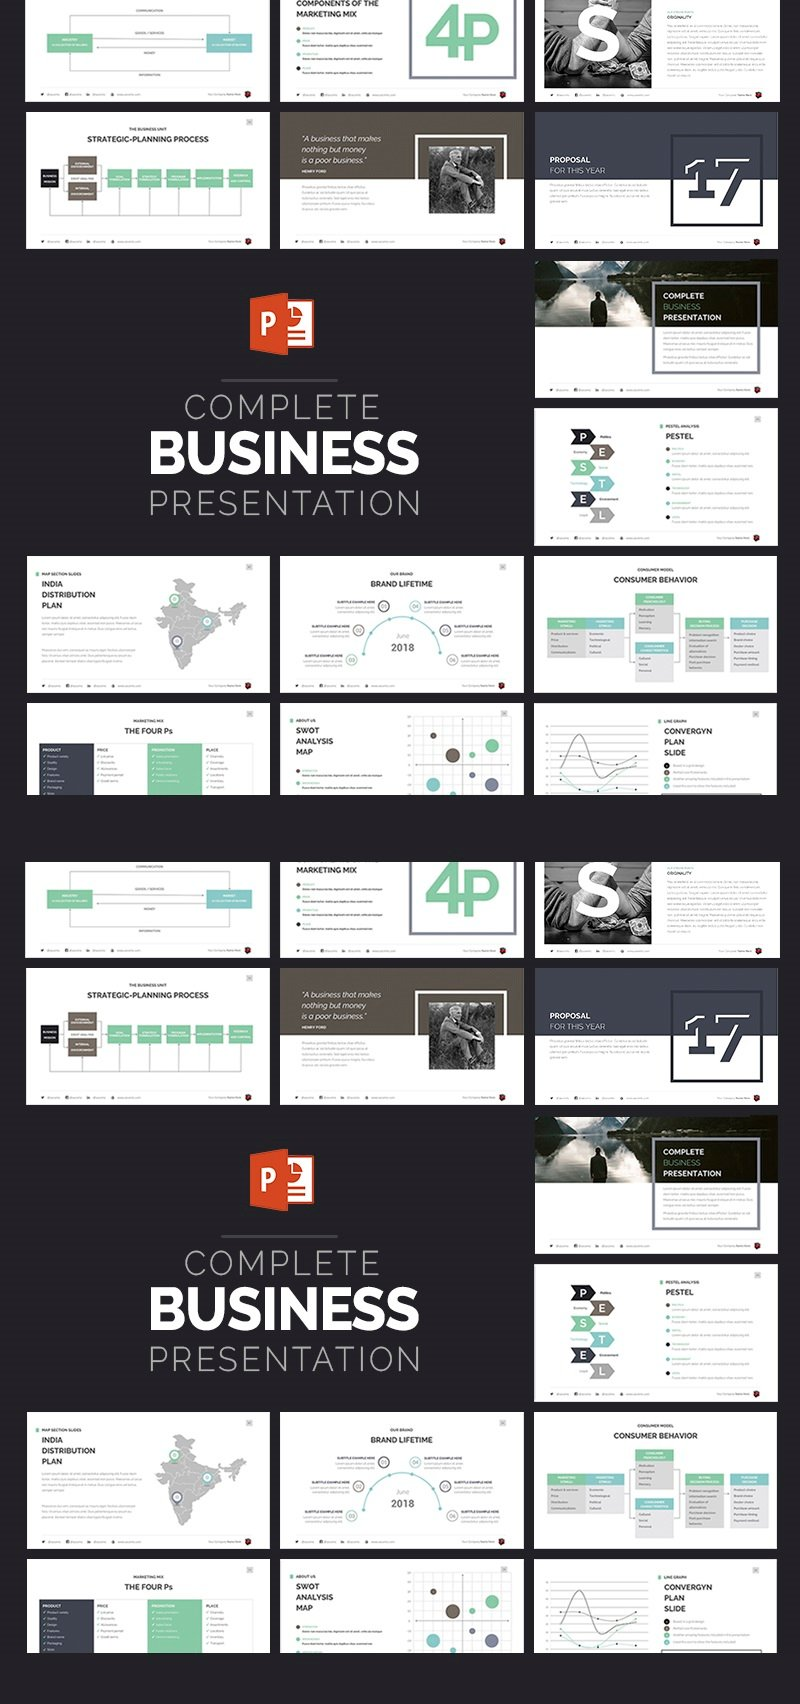 Complete Business Presentation PowerPointmall #63510